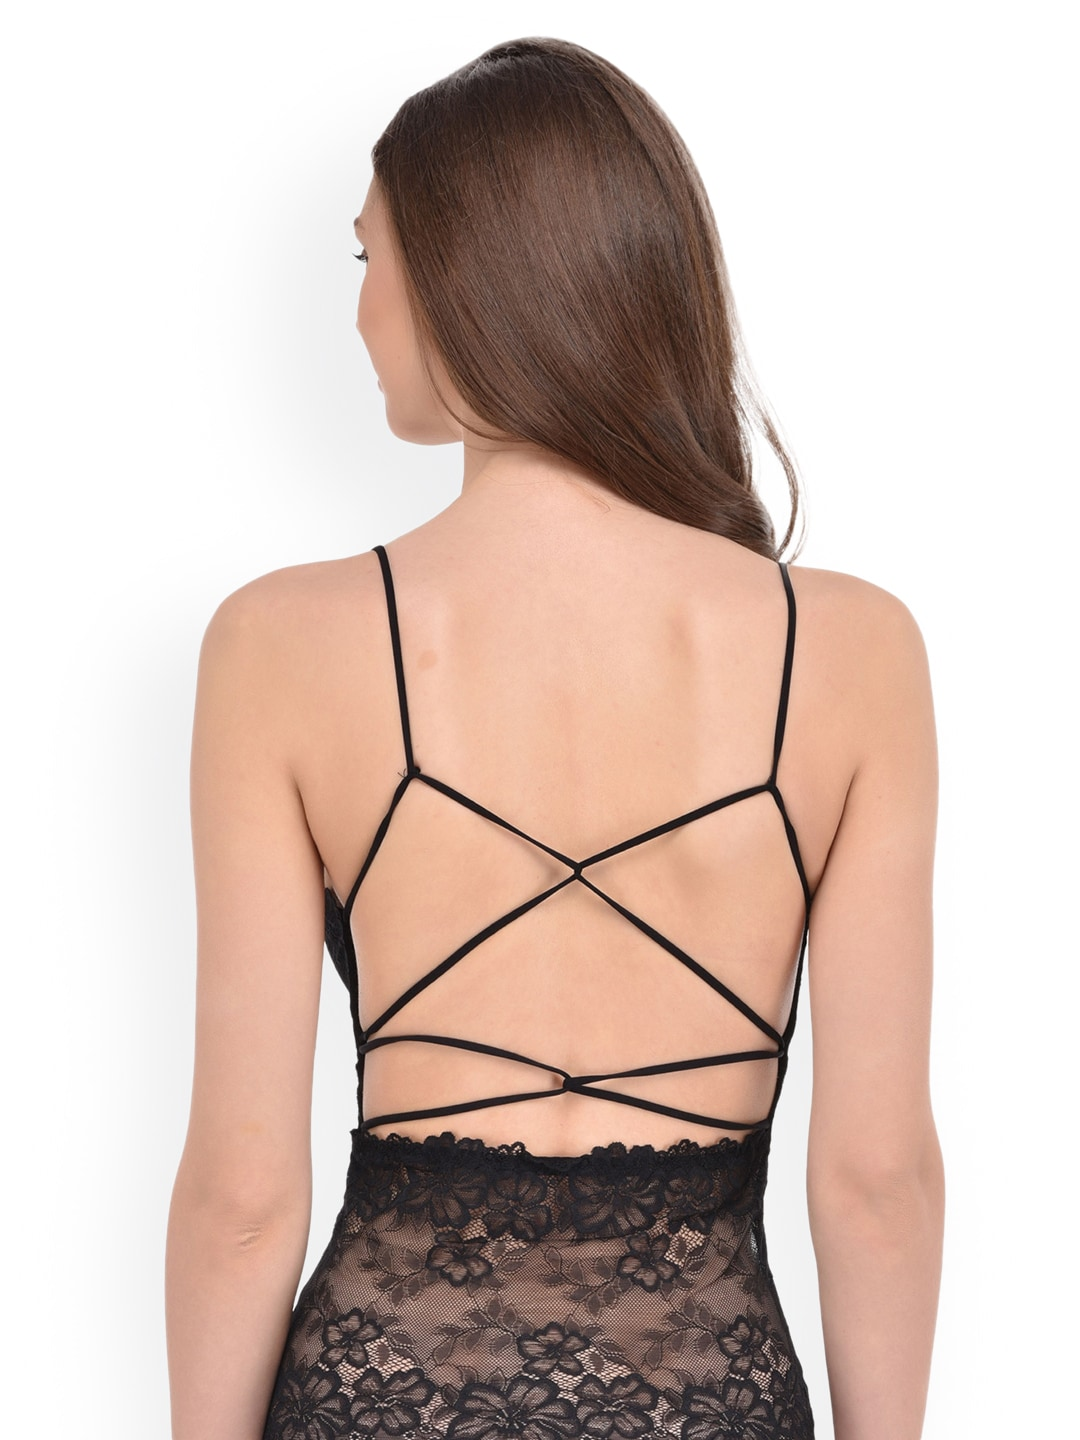 53a6b71de6 Bralette - Buy Stylish Bralettes online at best prices in India